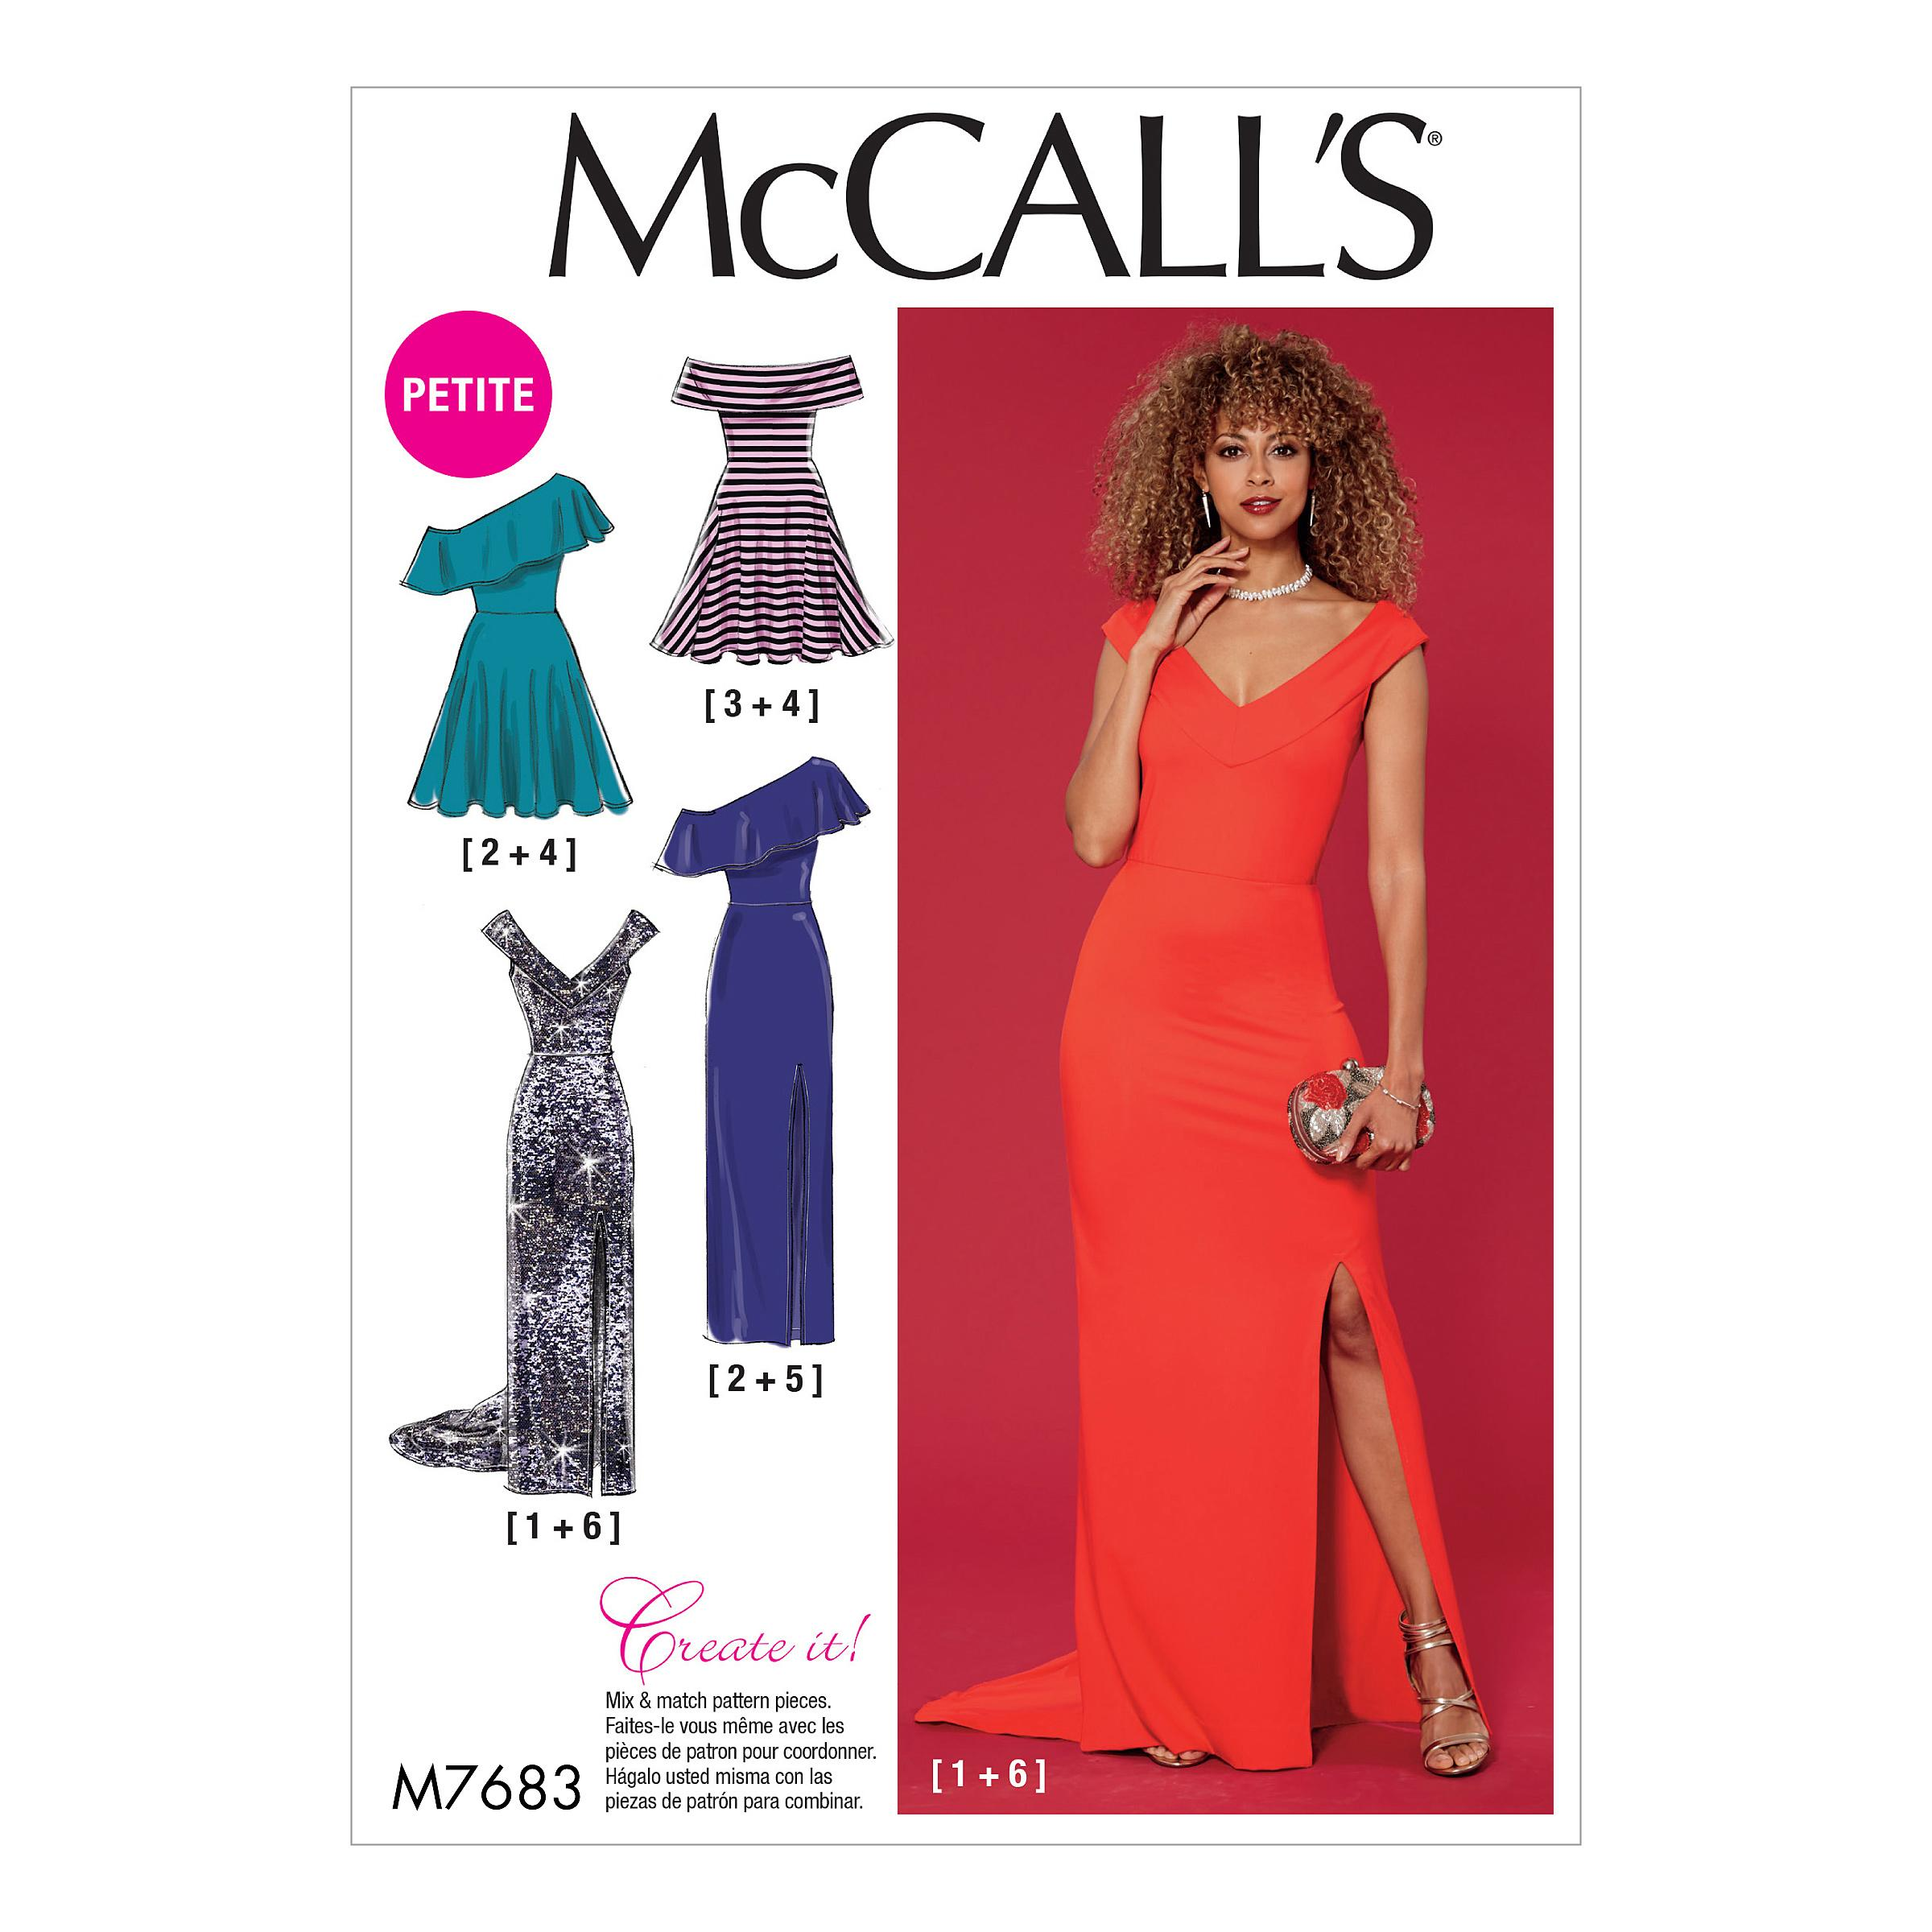 McCalls M7683 Misses Dresses, Misses Prom, Evening & Bridal